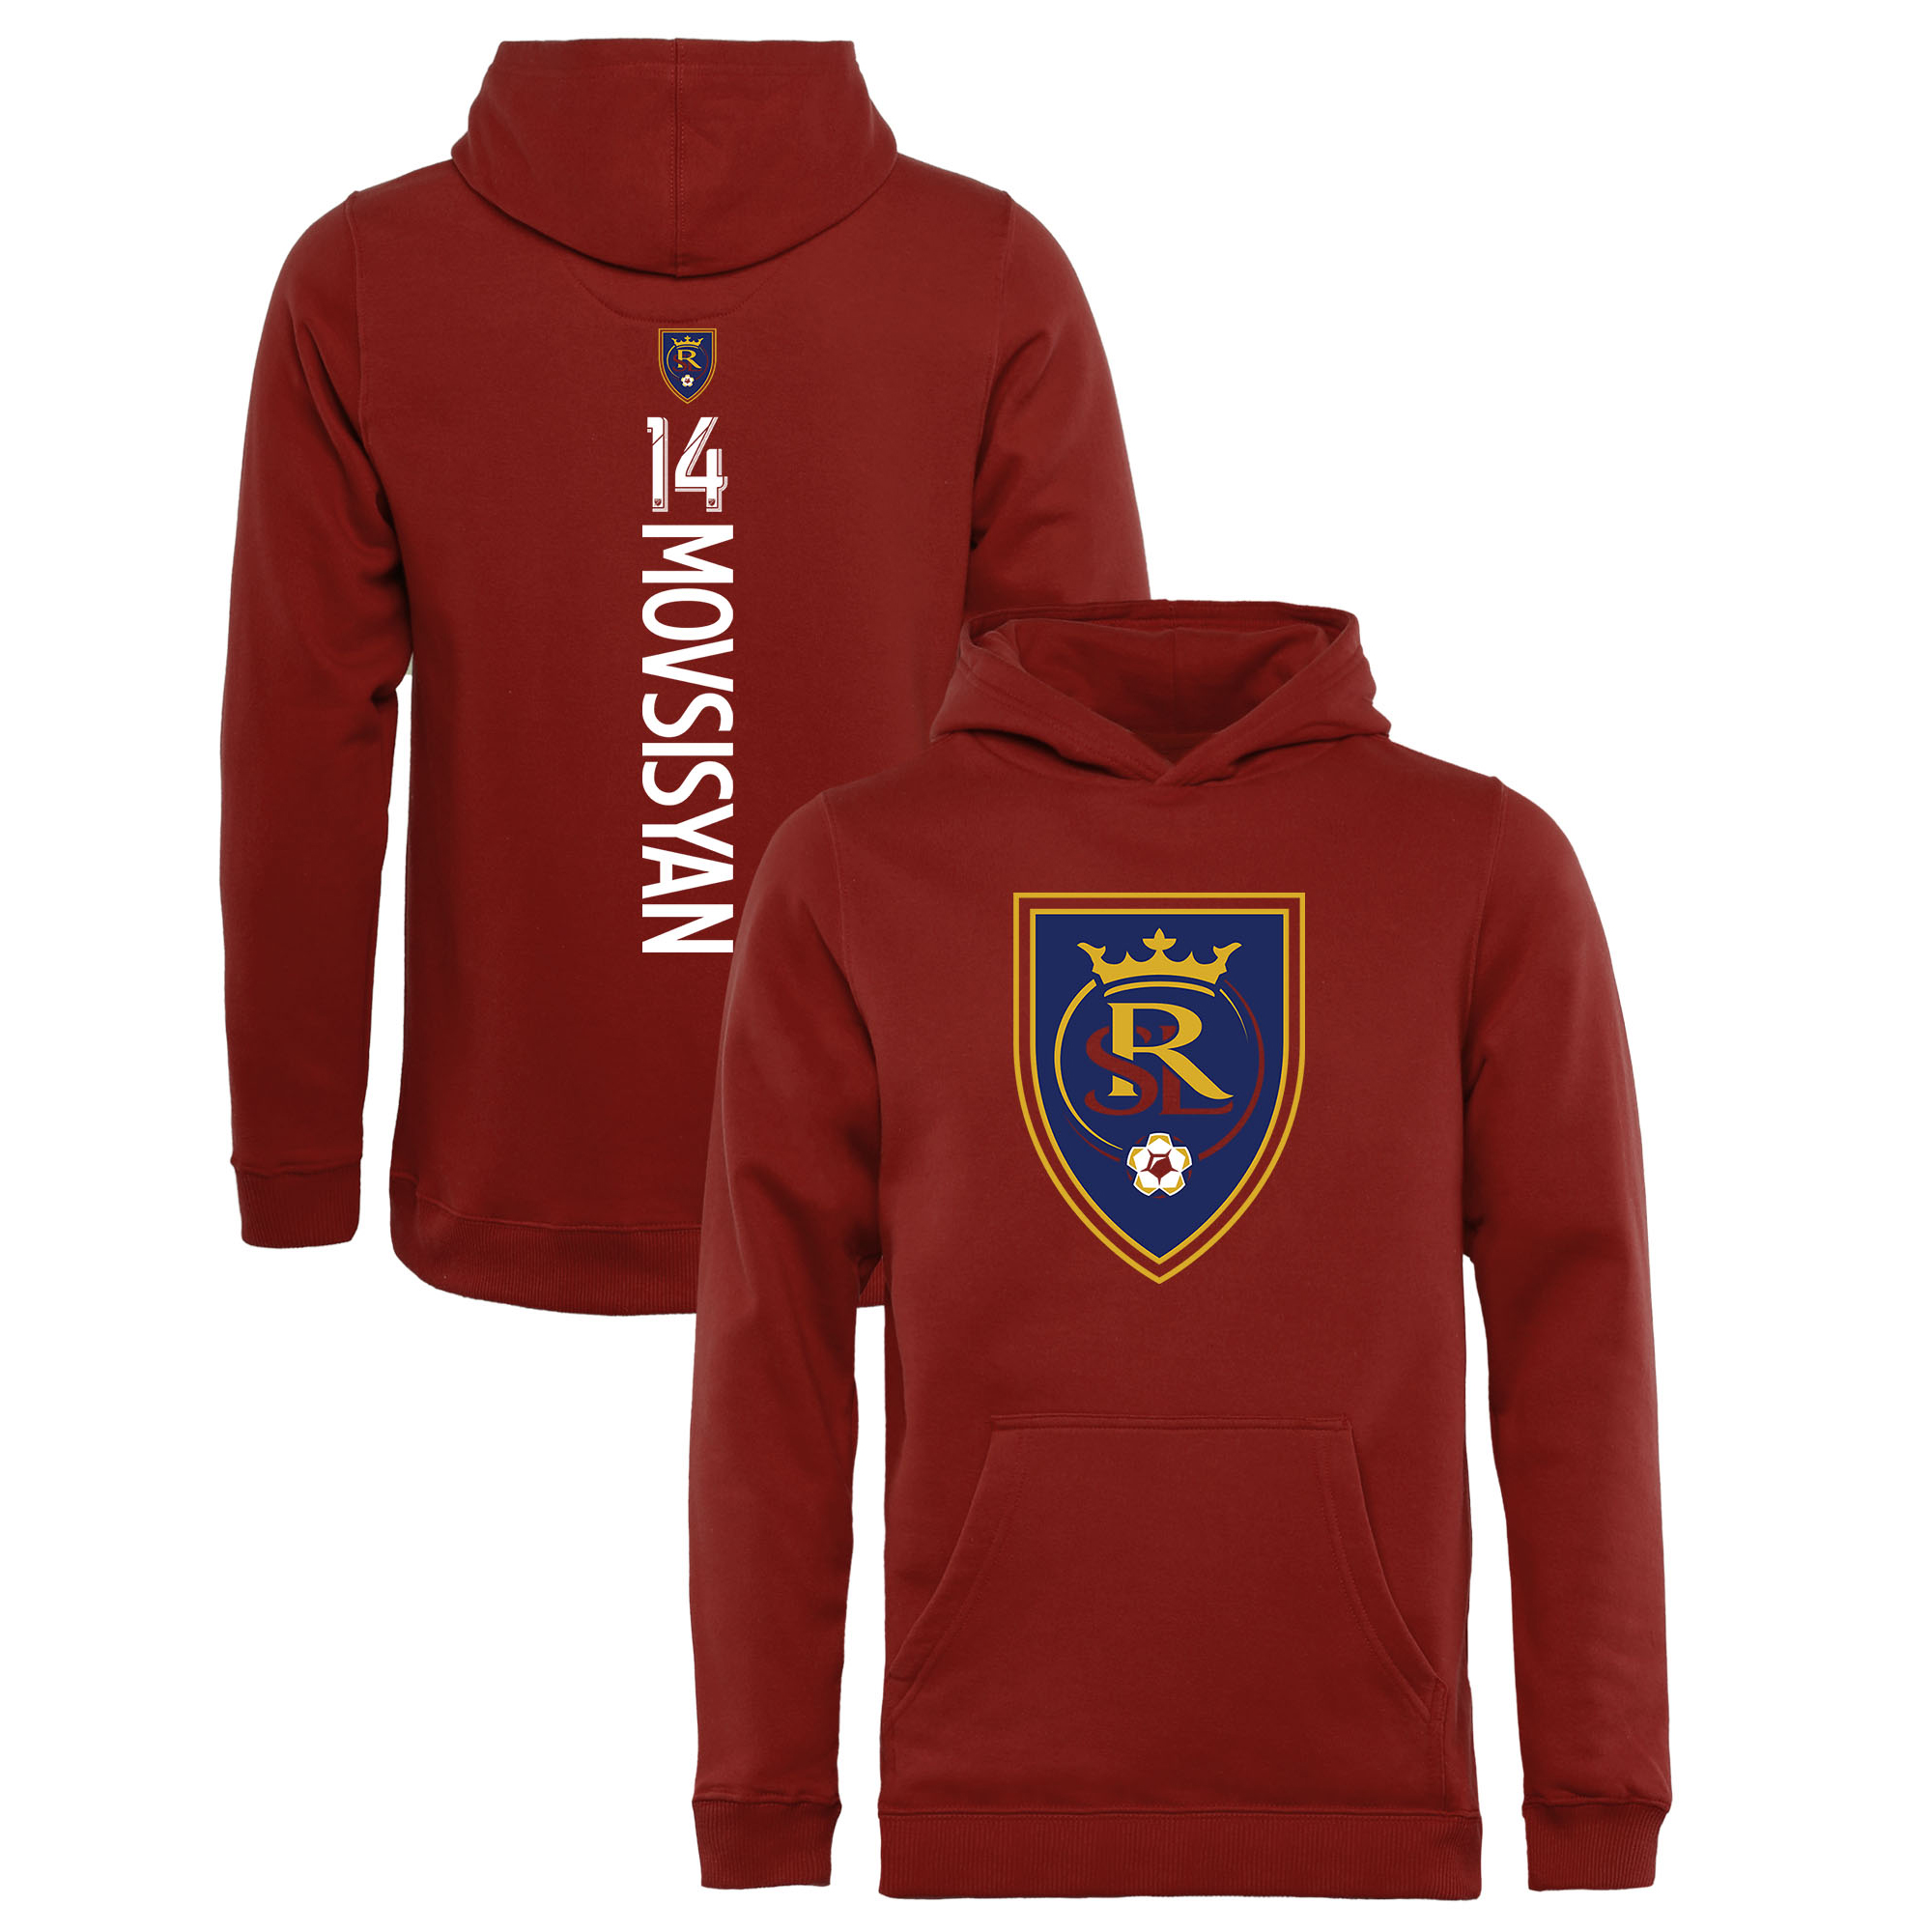 Yura Movsisyan Real Salt Lake Fanatics Branded Youth Backer Name & Number Pullover Hoodie - Red